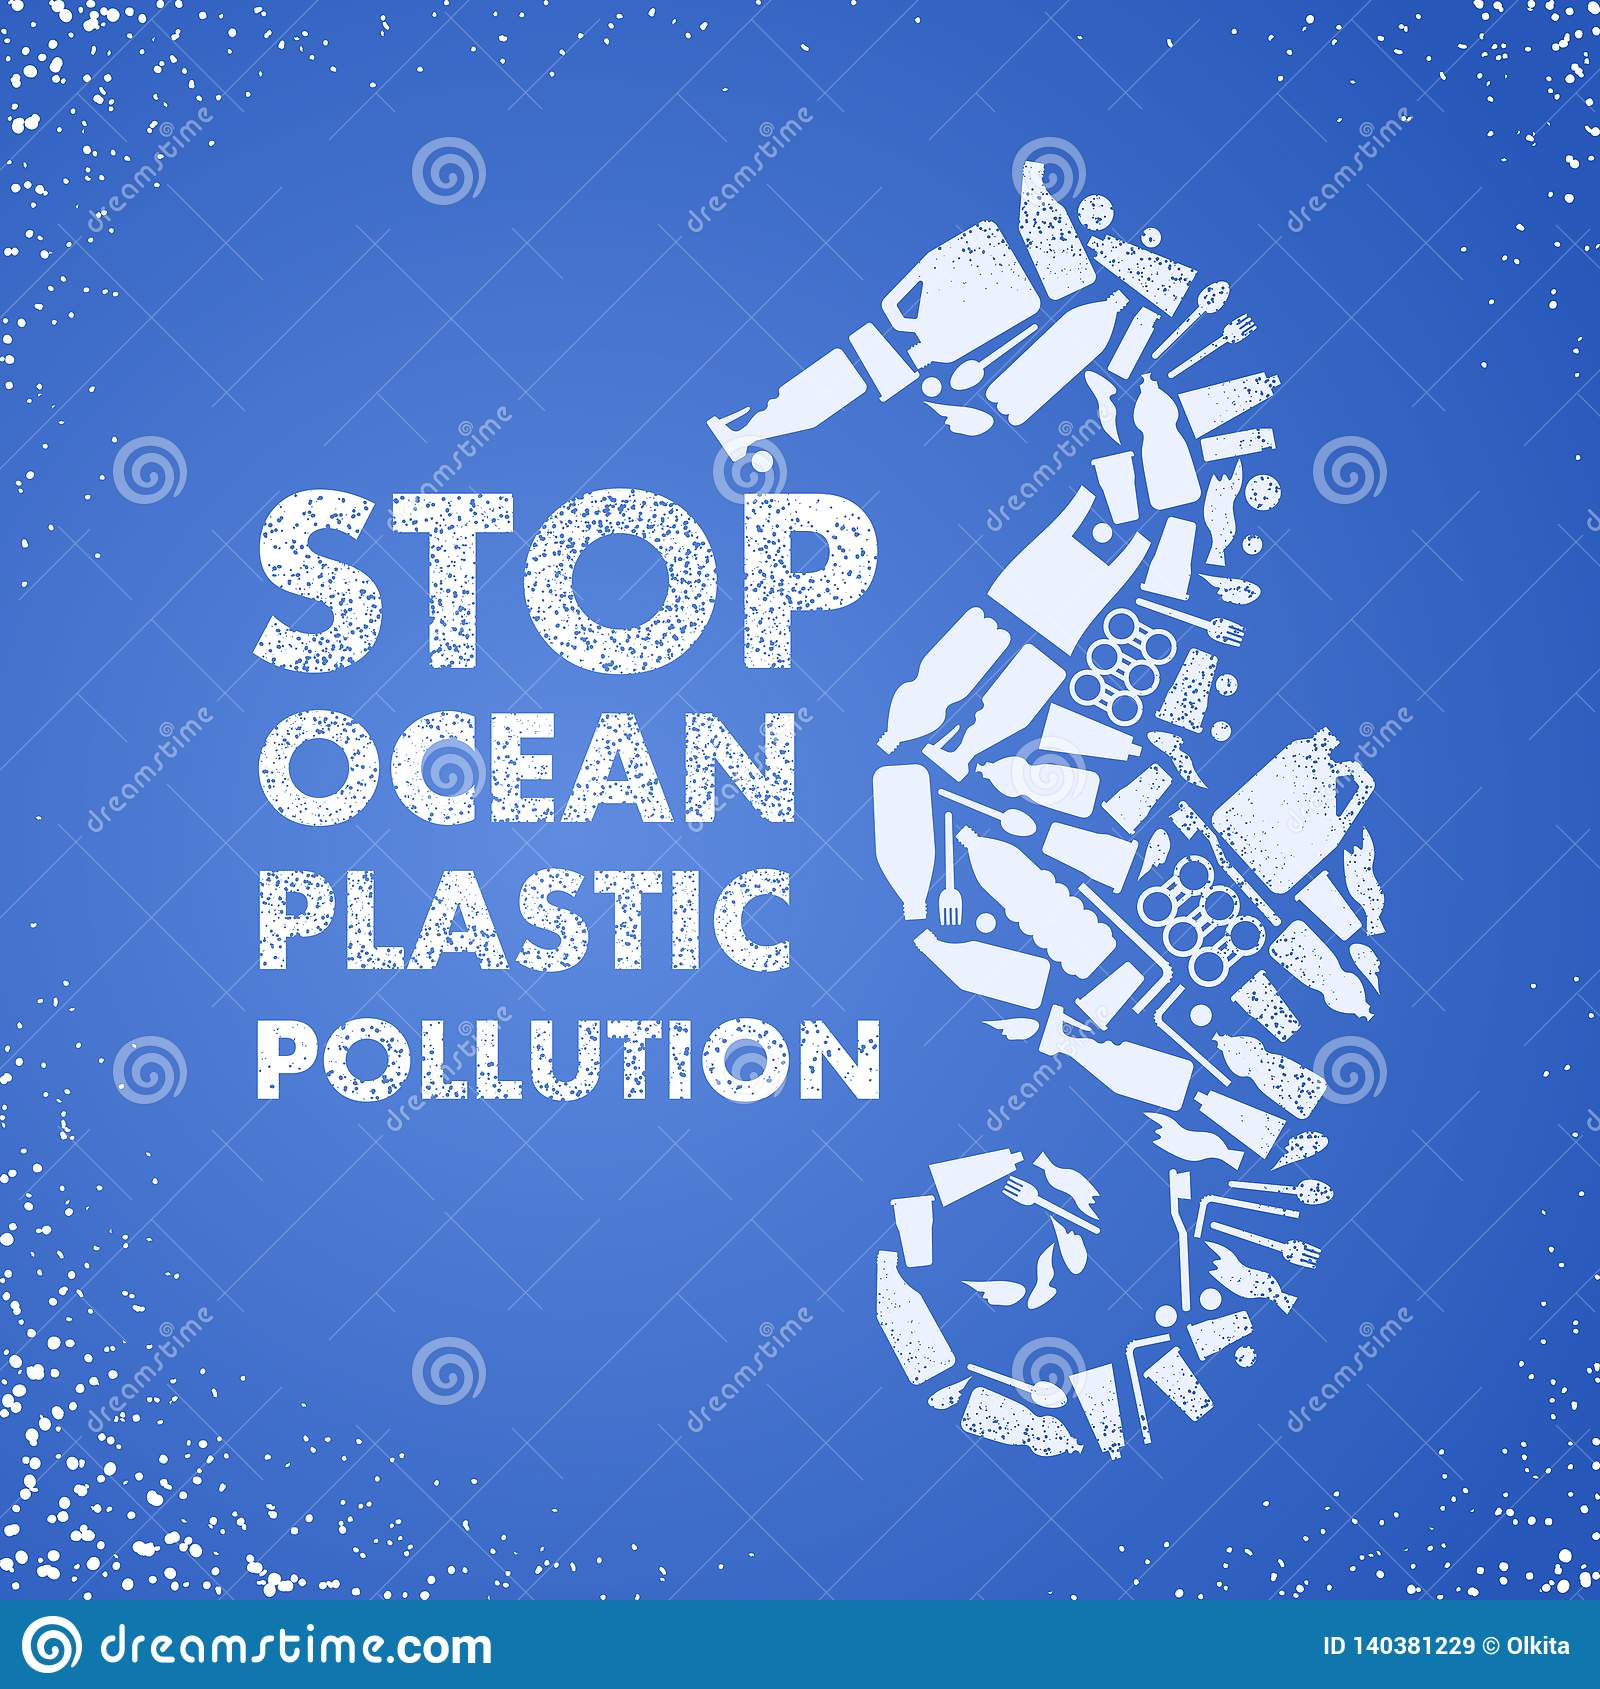 Stop ocean plastic pollution. Ecological poster Sea-horse composed of white plastic waste bag, bottle on blue background. Plastic